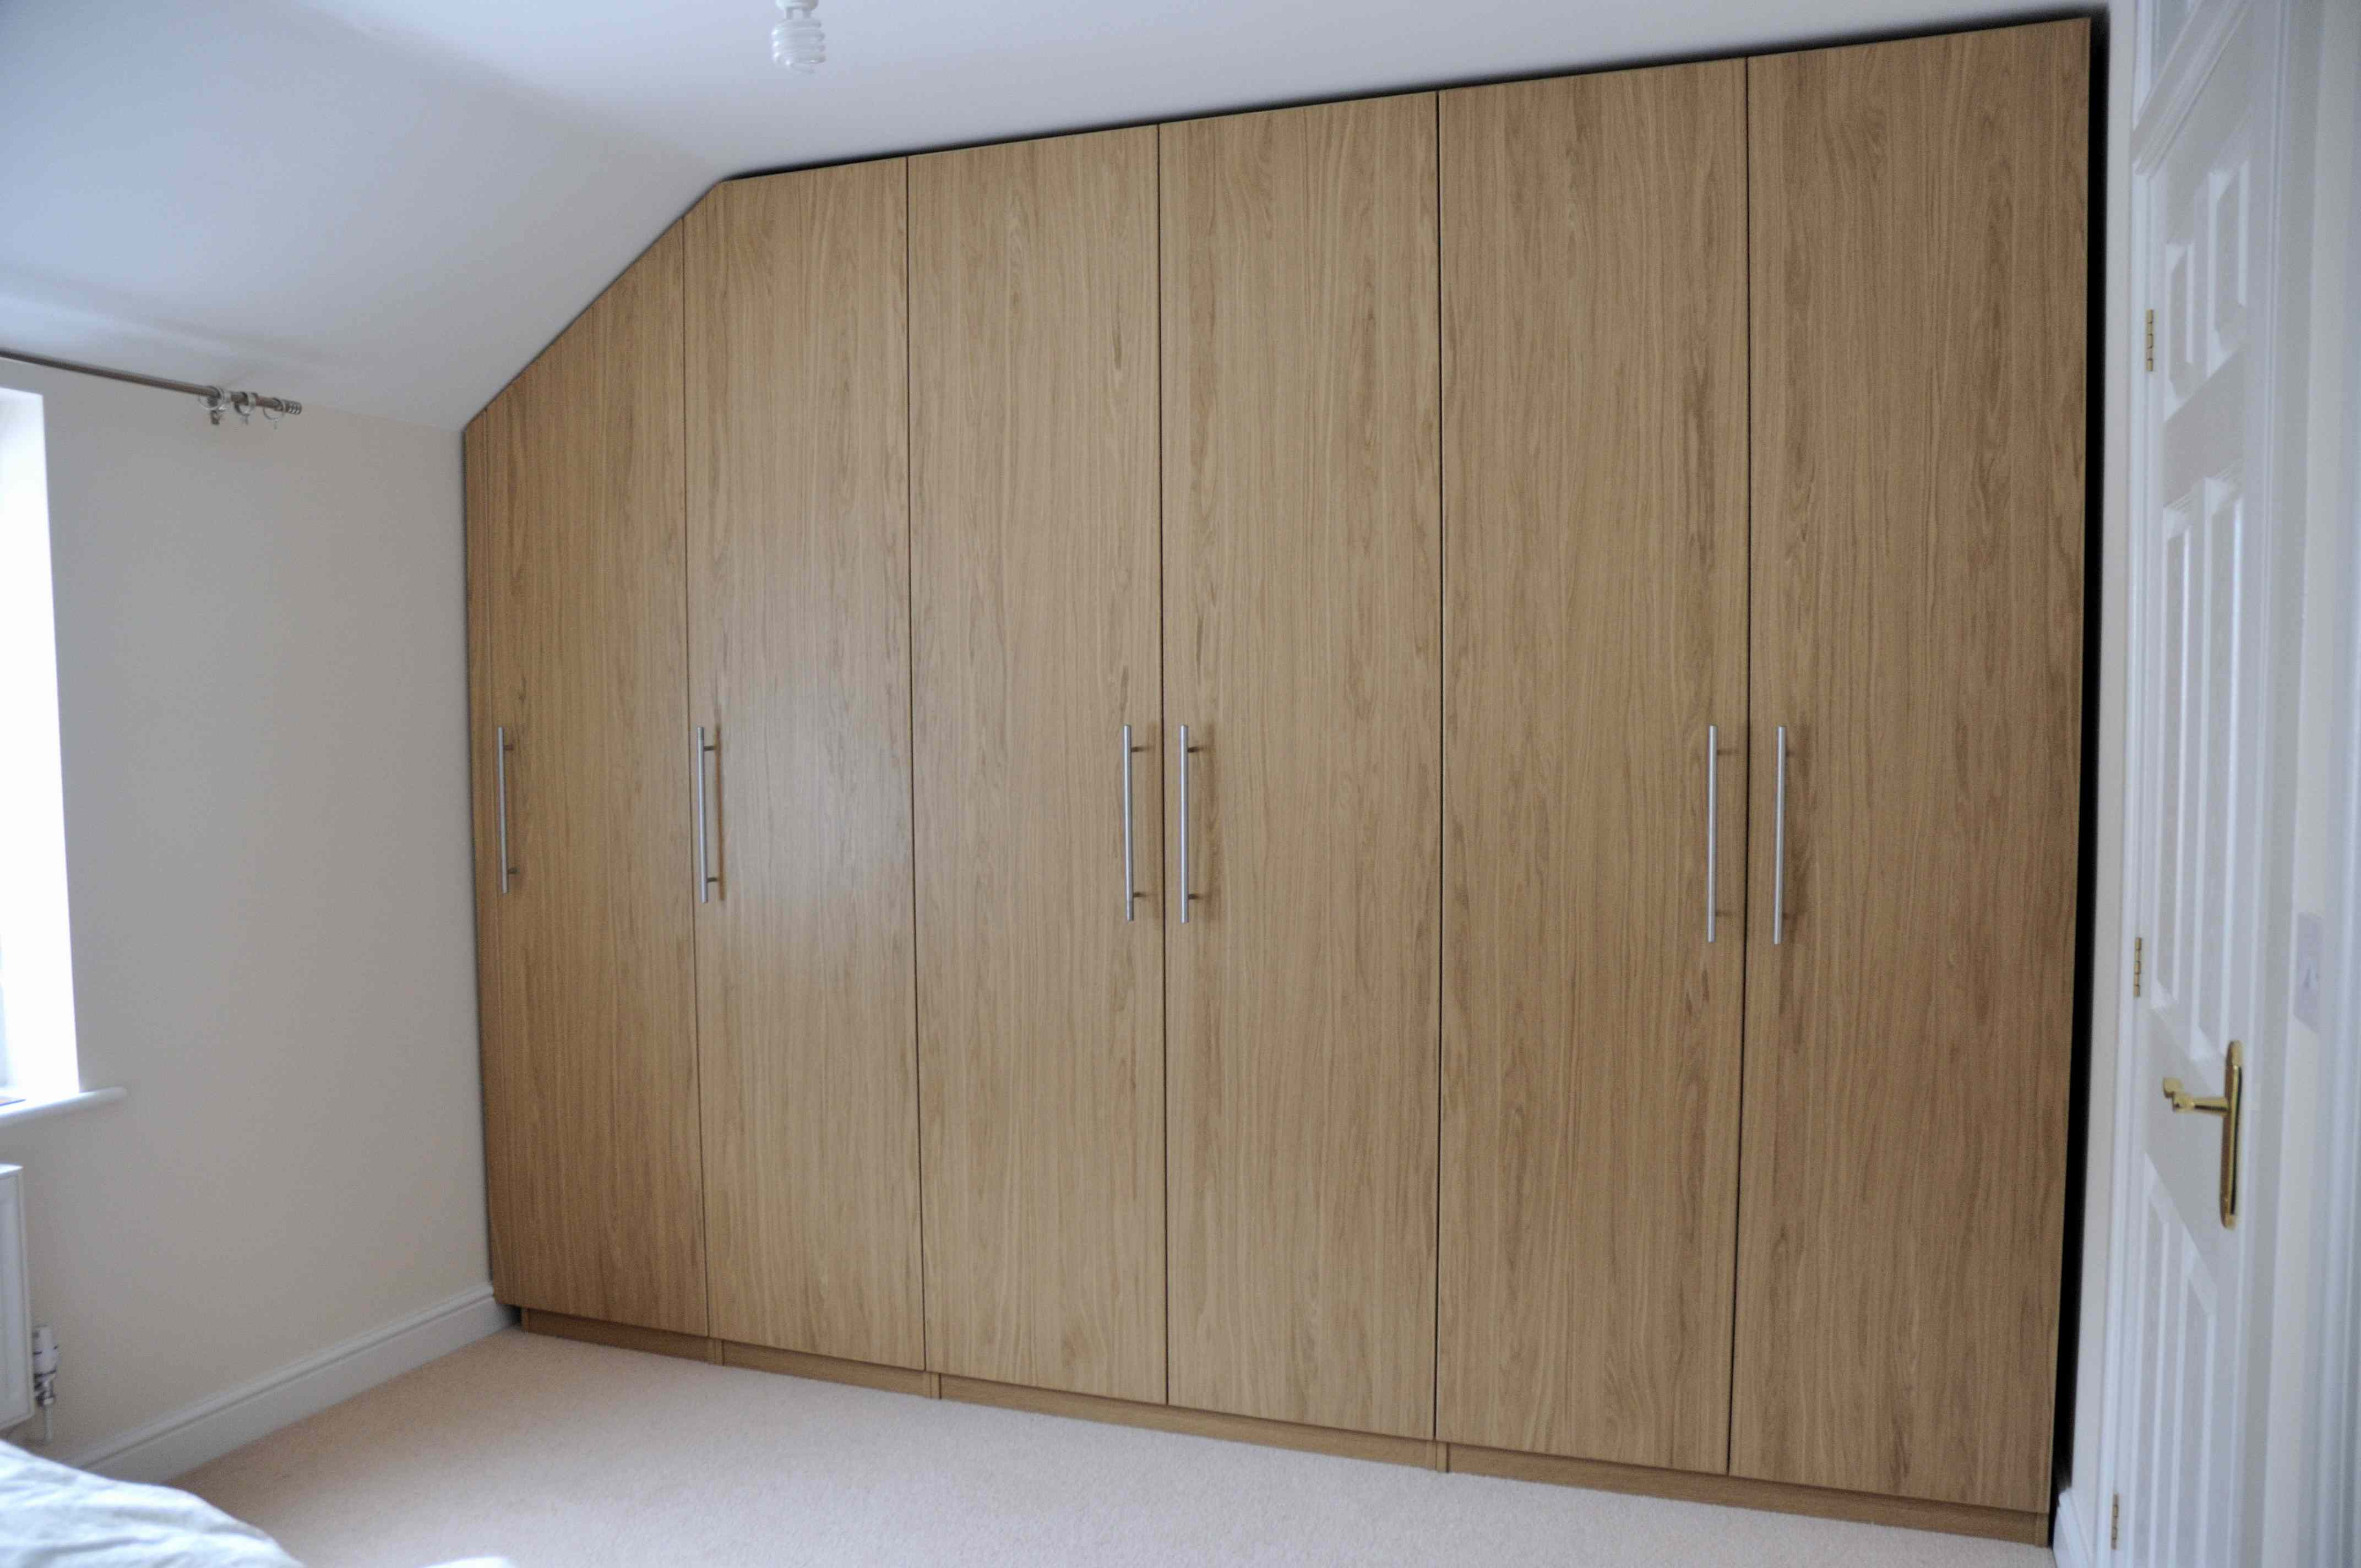 fitted-furniture-ikea-wardrobes-fitted-into-awkward-alcove-1